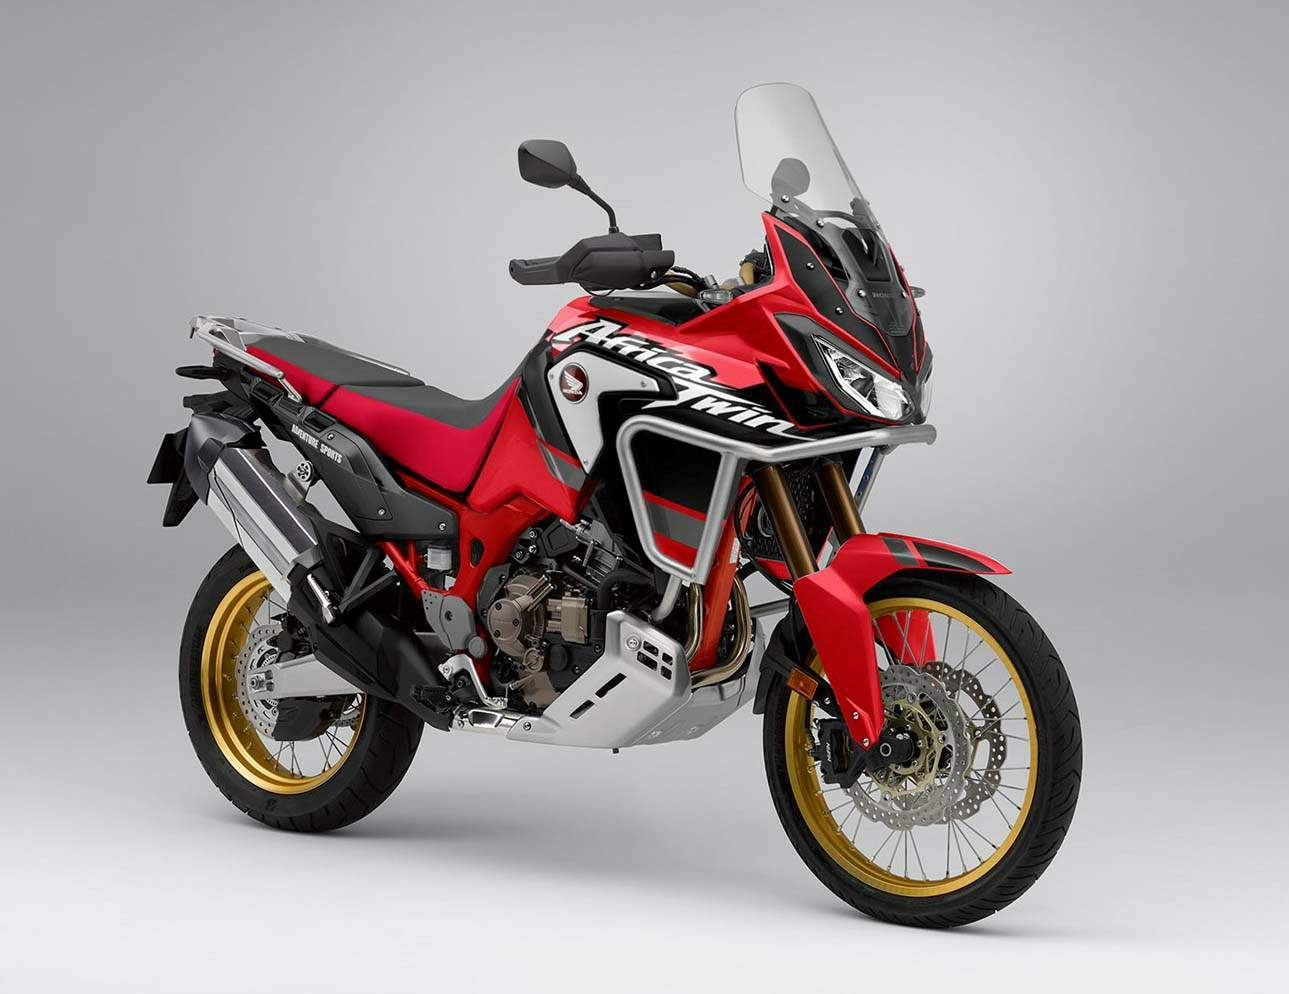 Honda CRF 1100L Africa  Twin / DCT For Sale Specifications, Price and Images